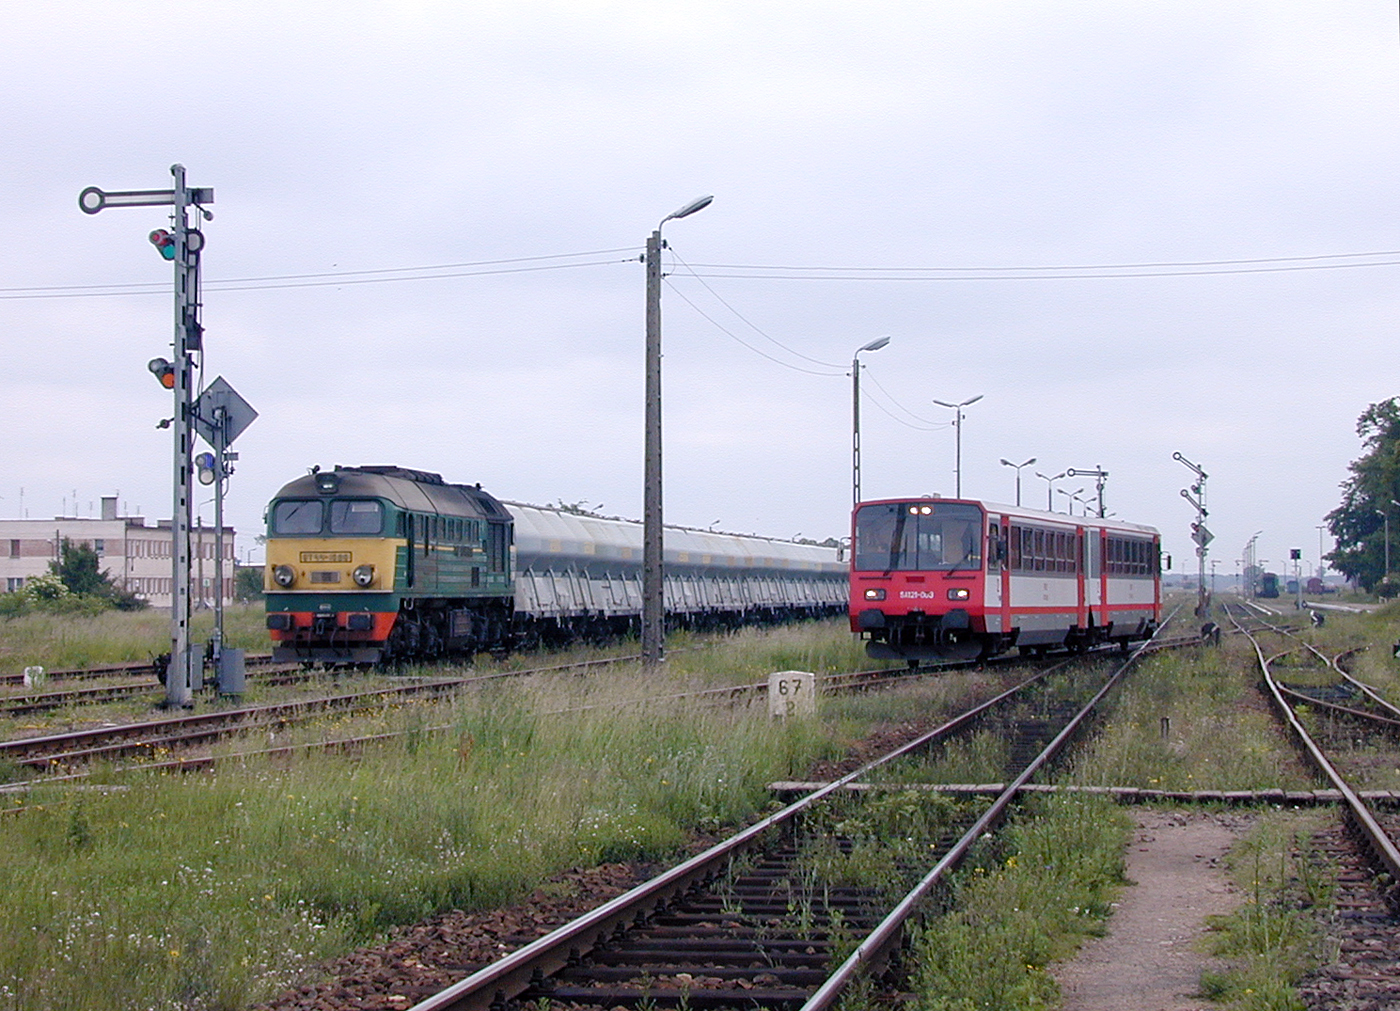 Trains at Czersk